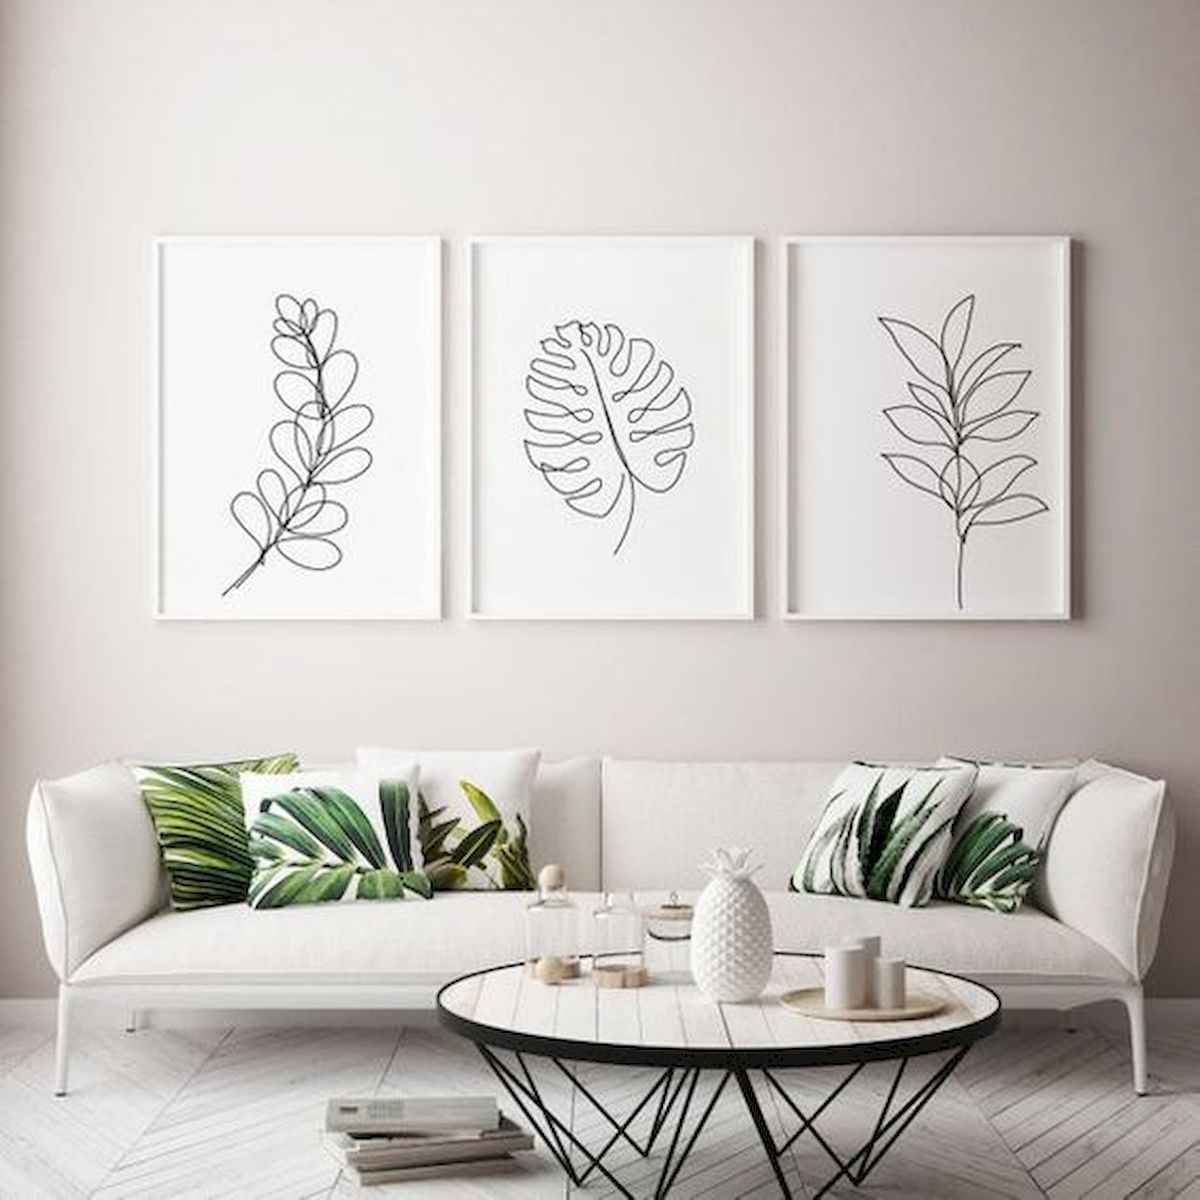 50+ Genius Small Living Room Decor Ideas And Remodel for Your First Apartment (13)